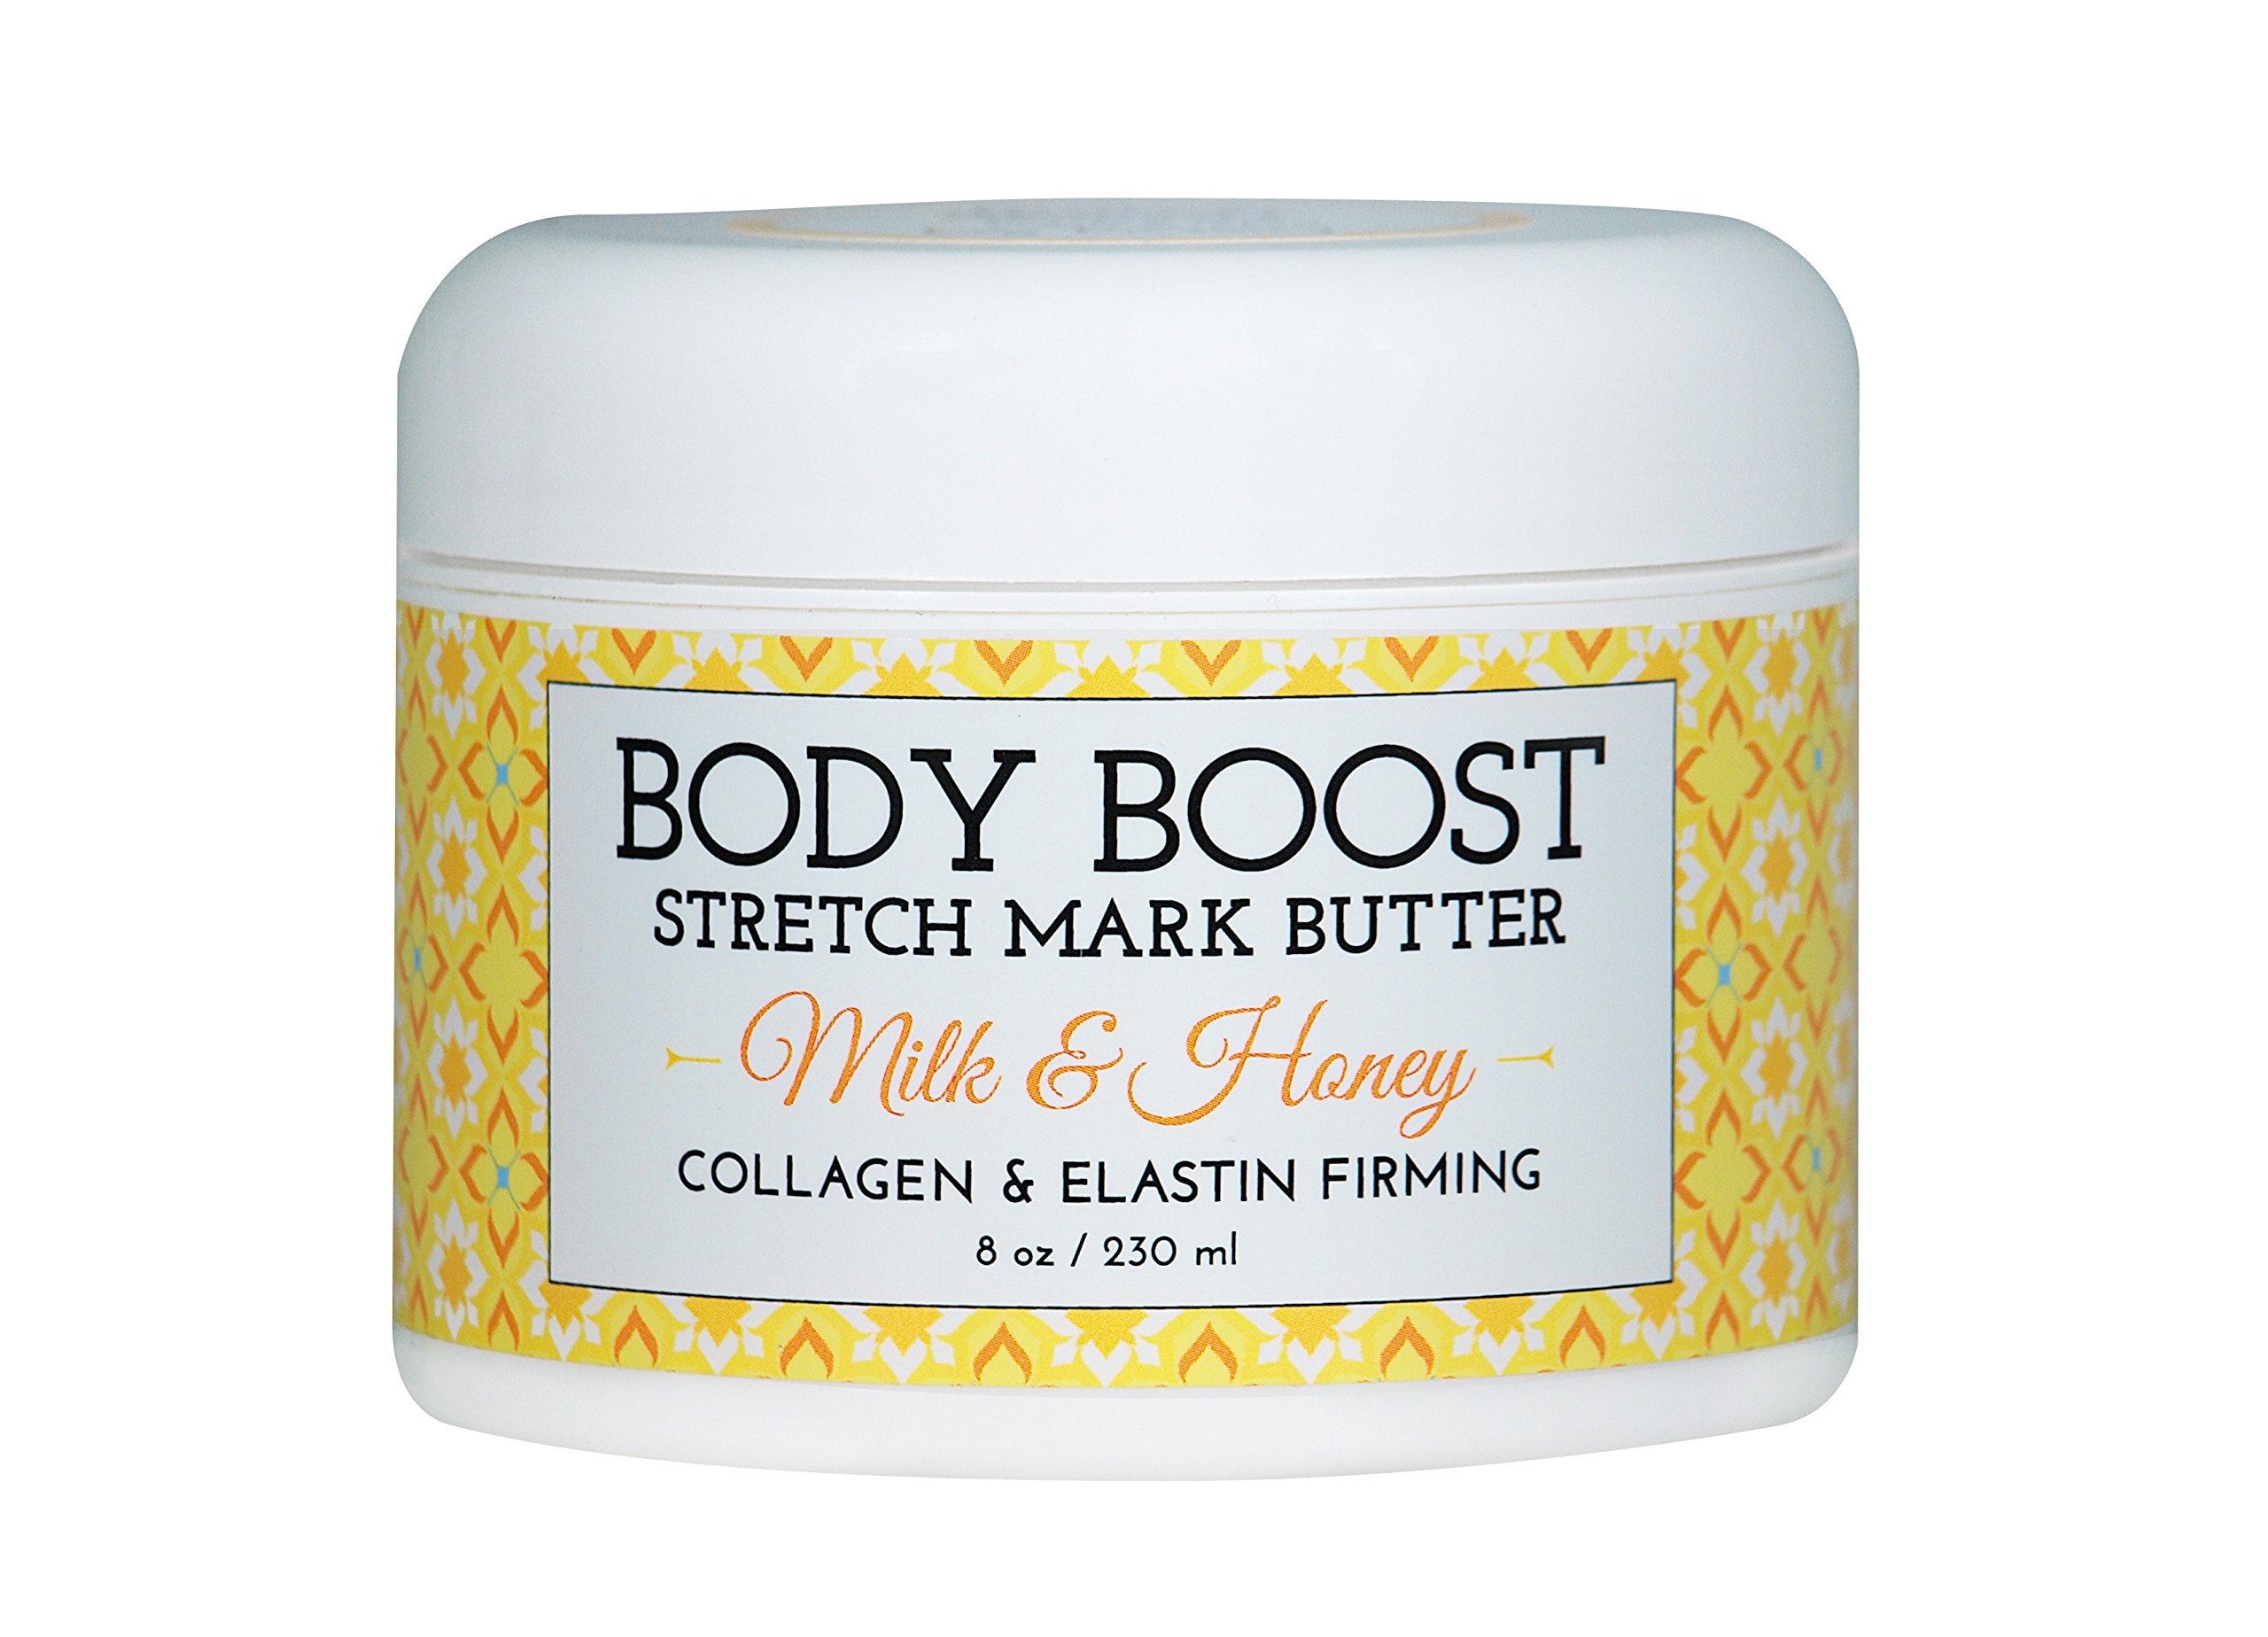 Body Boost Milk & Honey Stretch Mark Butter 8 oz.- Pregnancy and Nursing Safe Skin Care by Body Boost